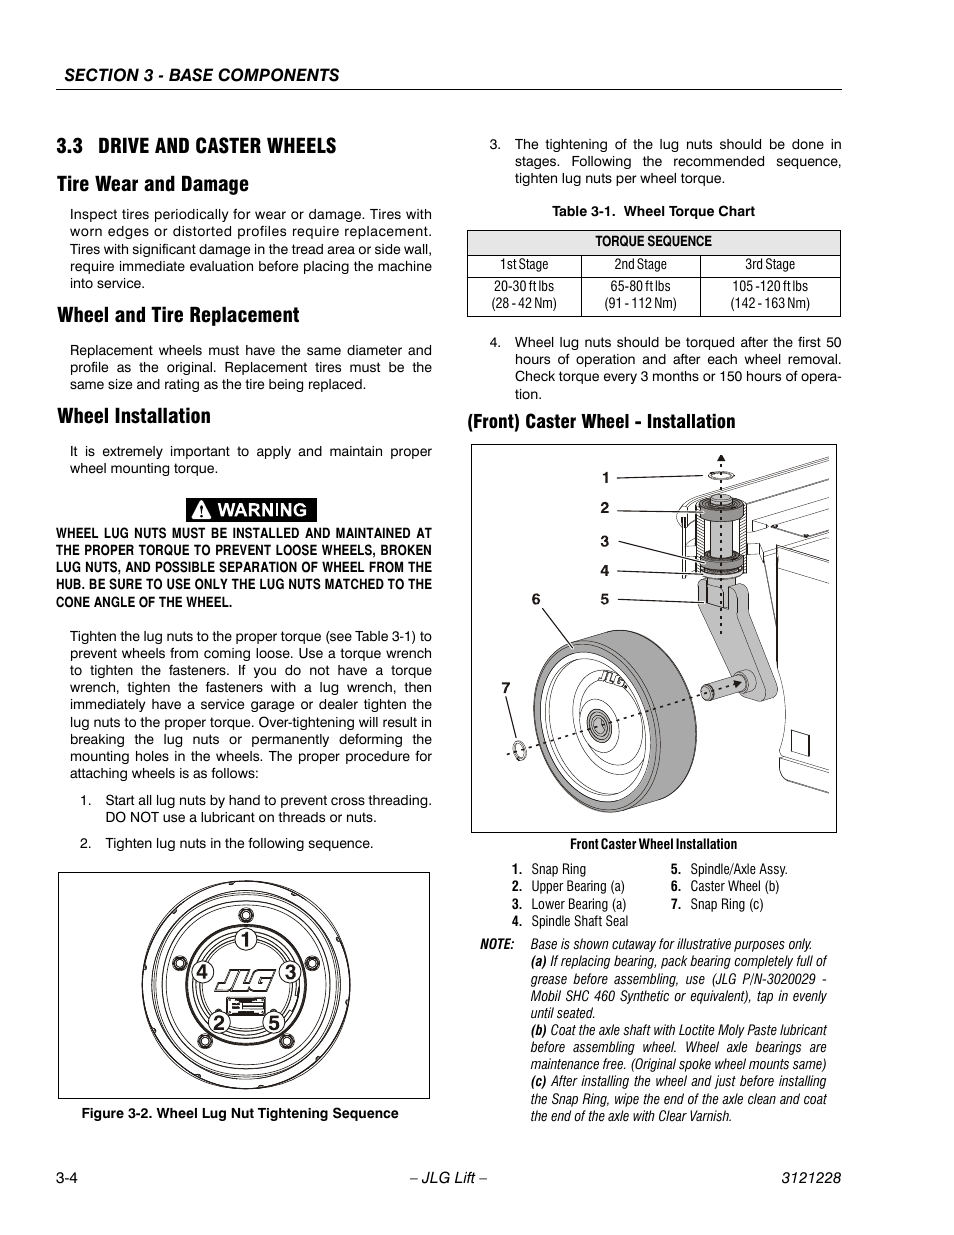 medium resolution of 3 drive and caster wheels tire wear and damage wheel and tire replacement